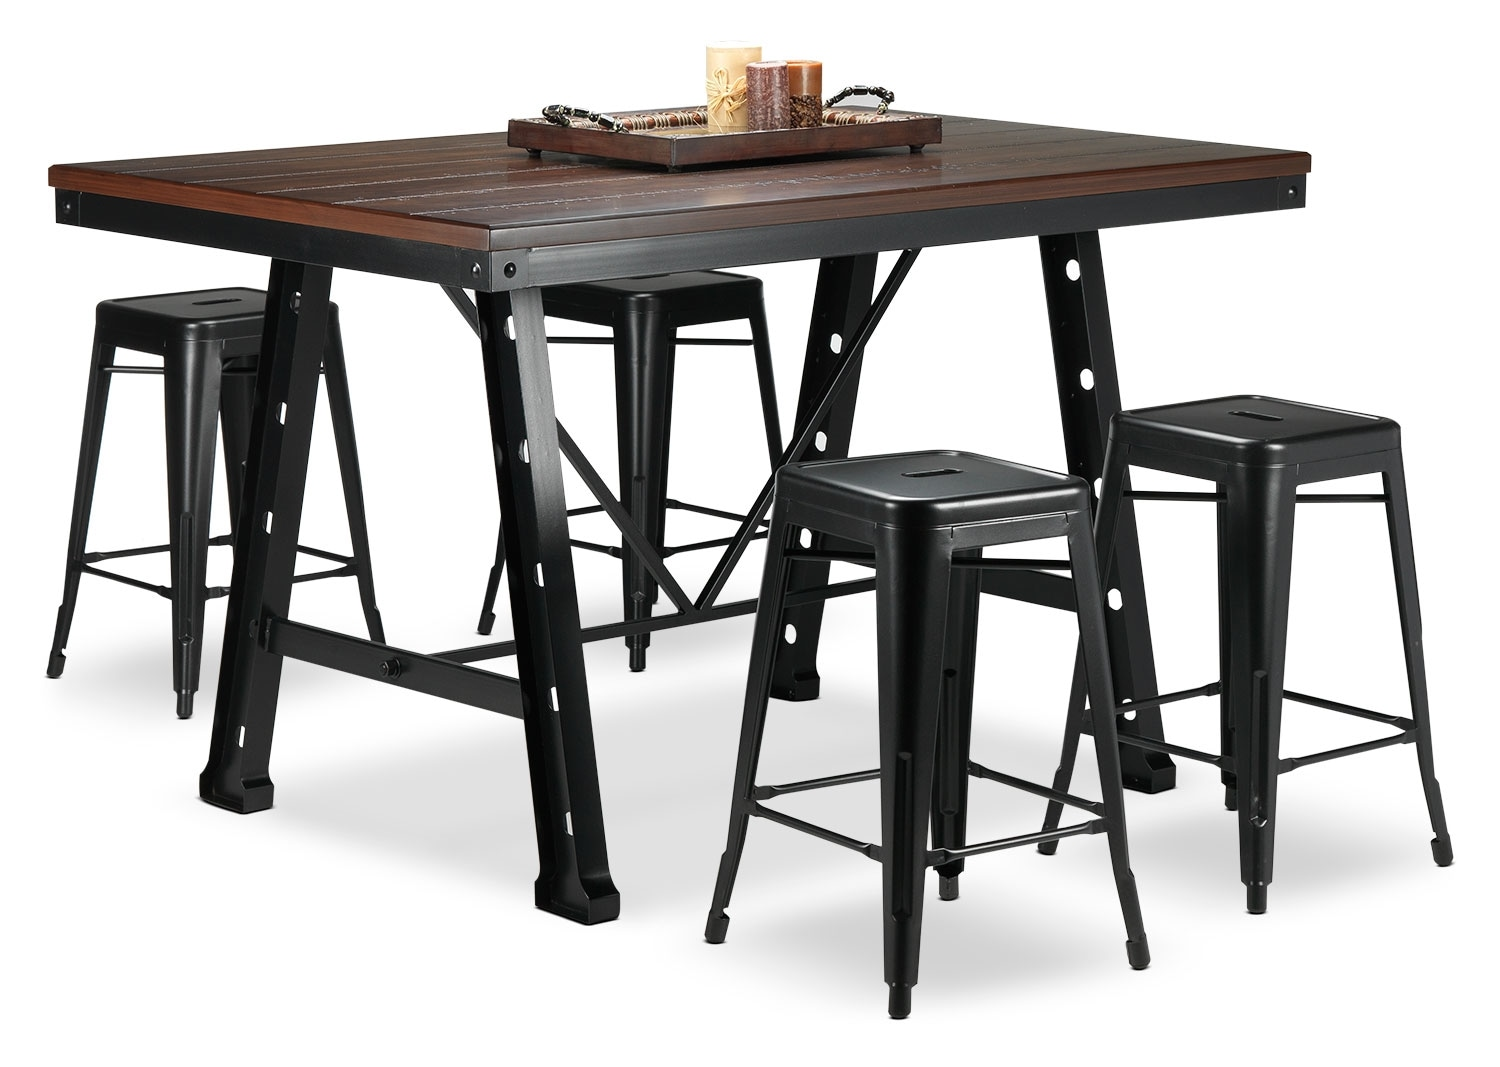 Casual Dining Room Furniture - Stanton 5-Piece Dinette Set - Black and Walnut